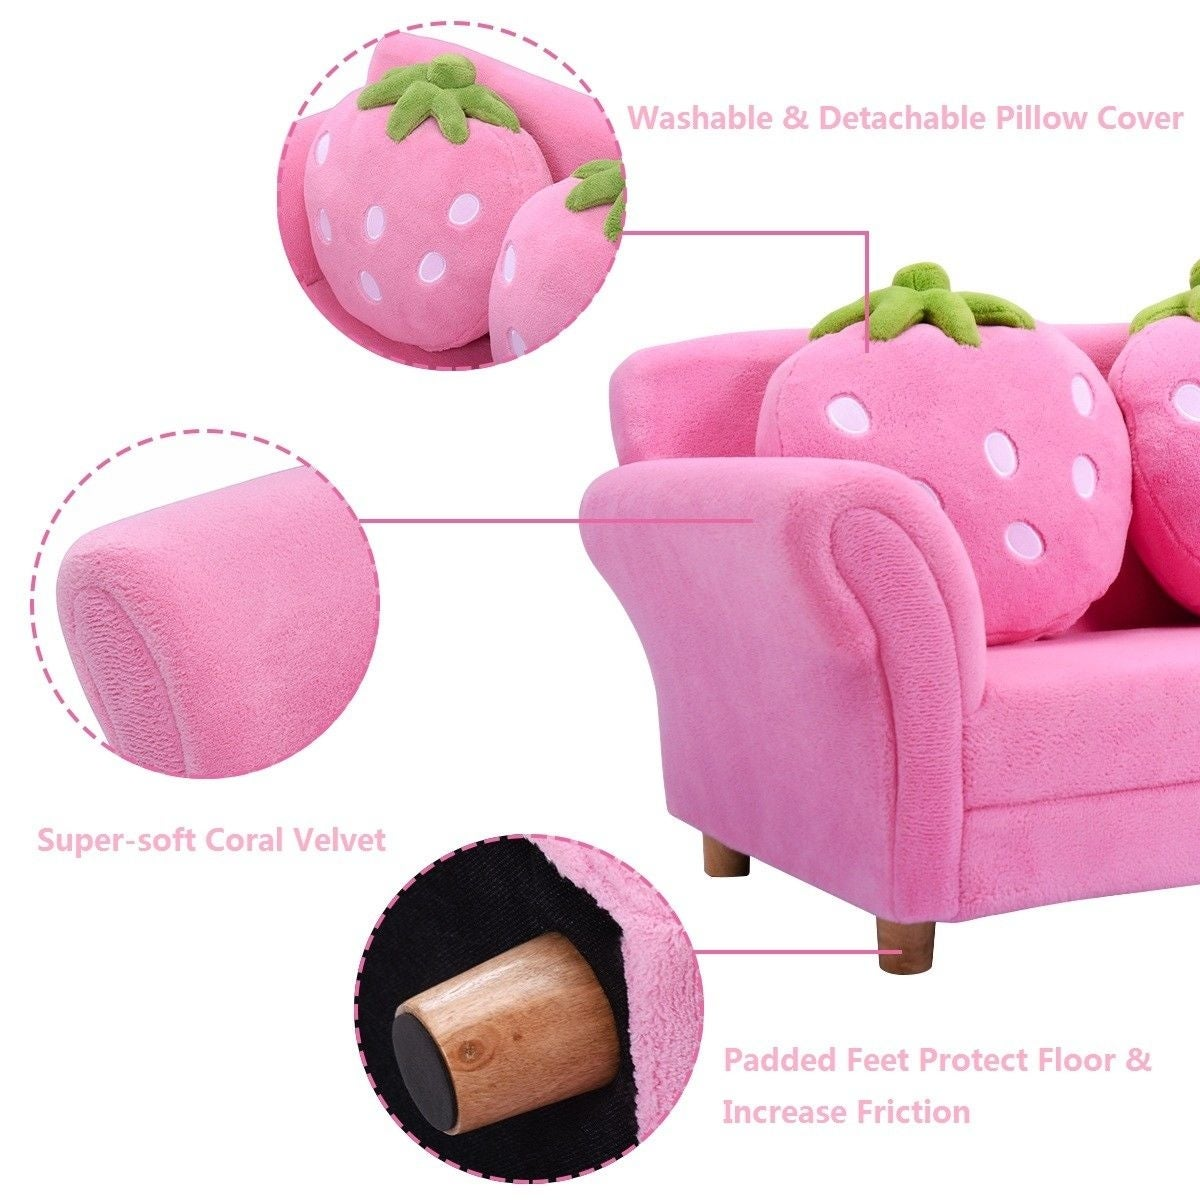 Costway Kids Sofa Strawberry Armrest Chair Lounge Couch W 2 Pillow Children Toddler Pink